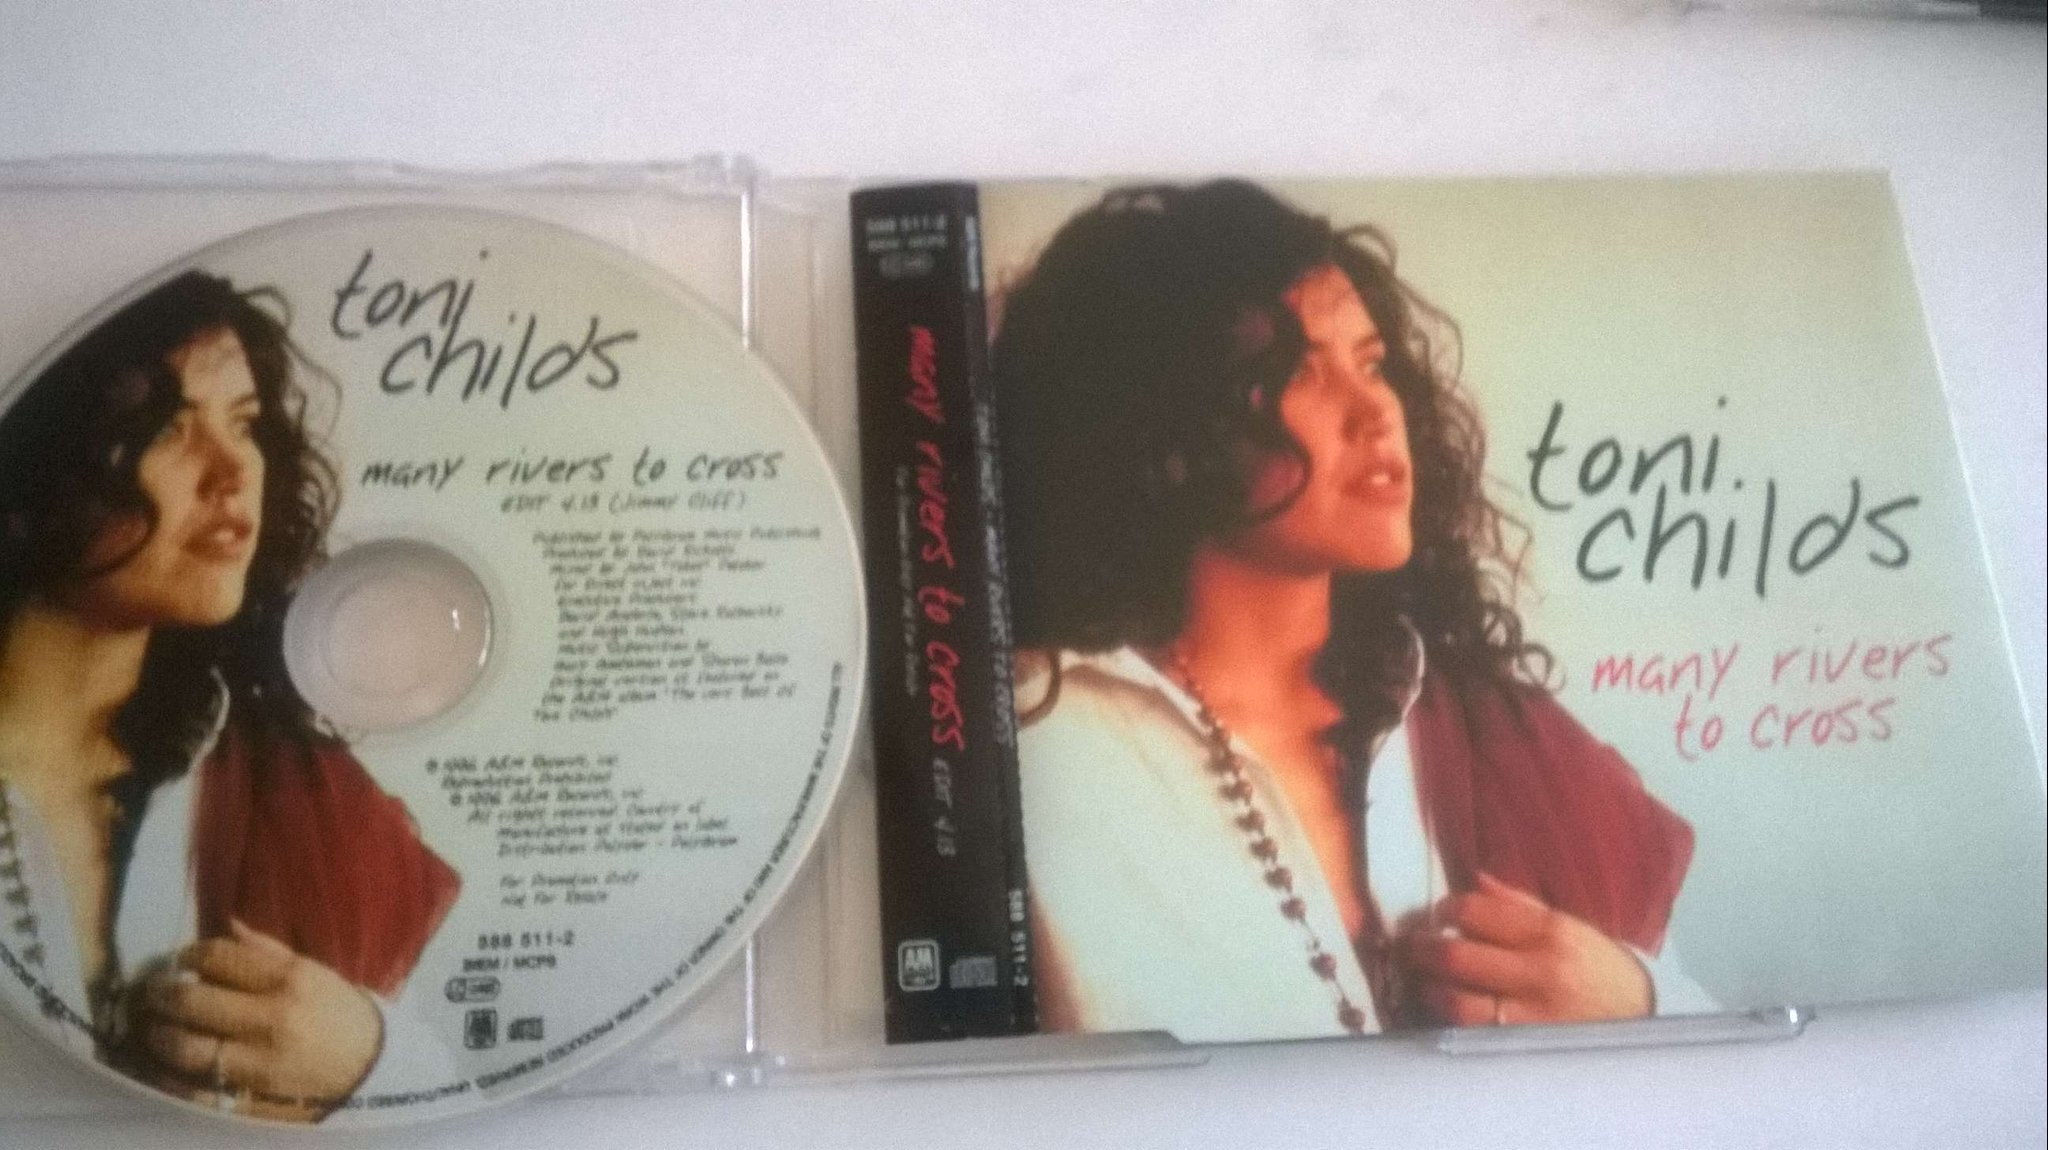 Toni Childs - Many Rivers To Cross, CD, Single, Promo